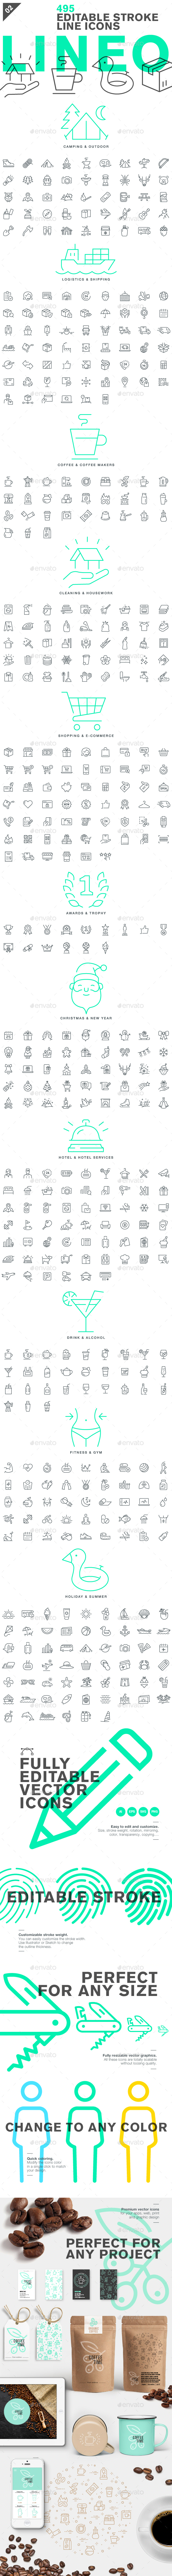 Lineo - Pack 2 - 495 Icons - Icons